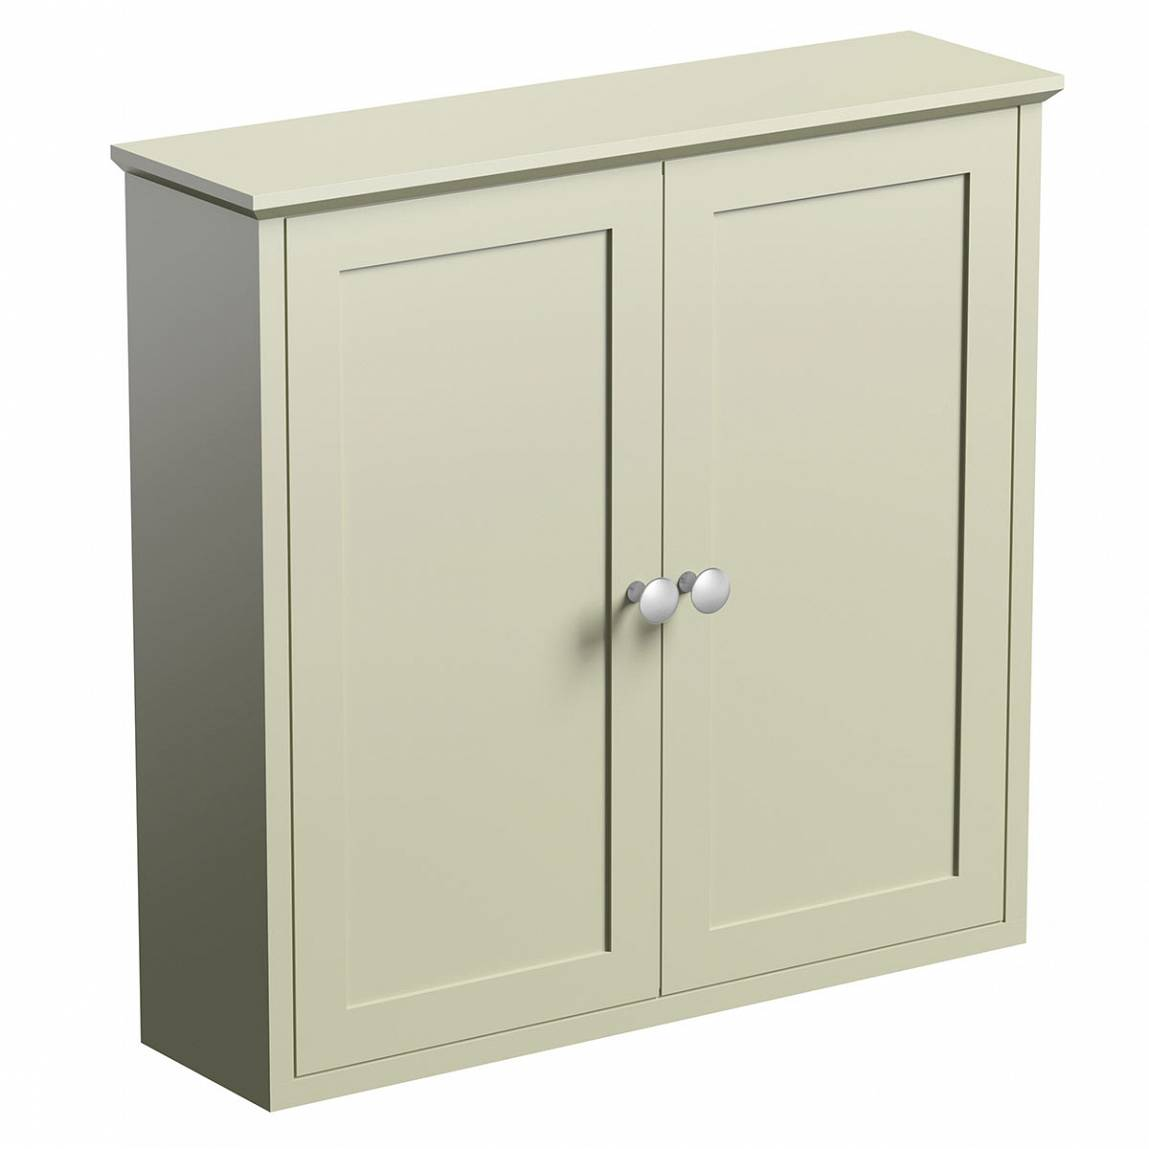 Image of Camberley Sage Wall Mounted Cabinet